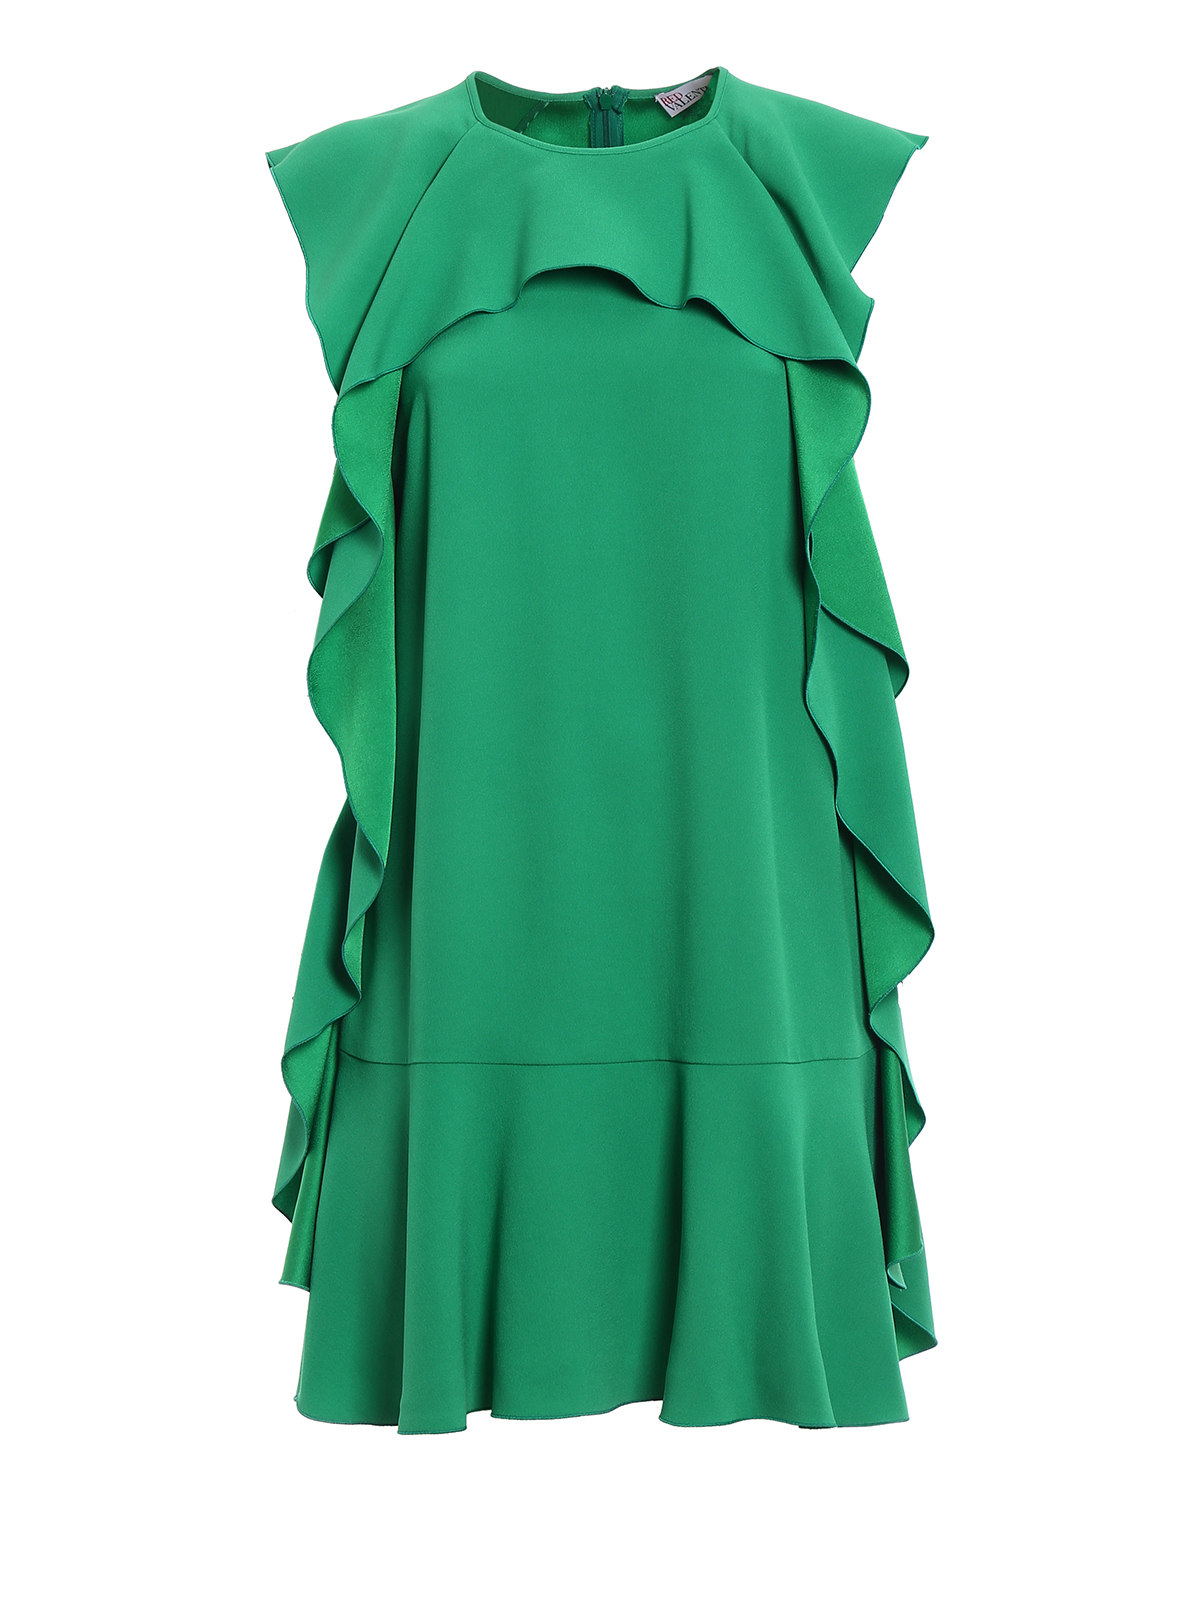 Find great deals on eBay for red green yellow black dress. Shop with confidence.